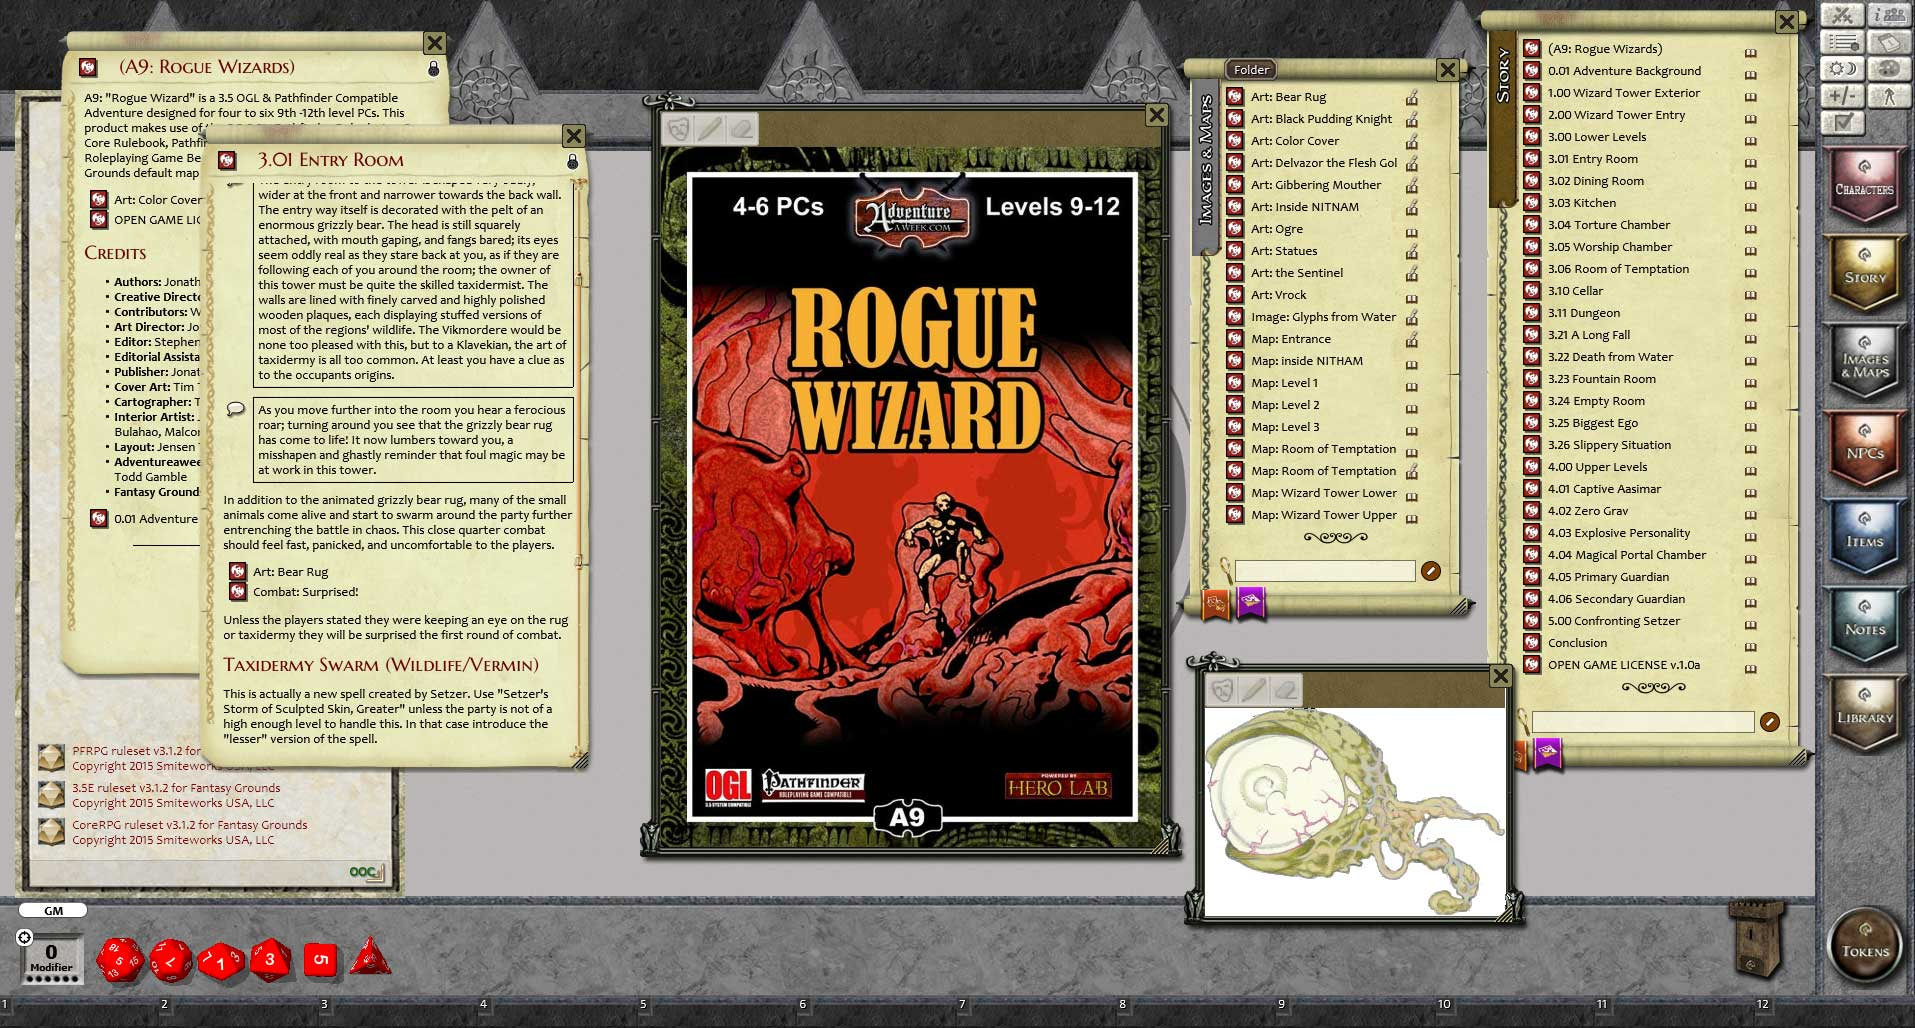 Fantasy Grounds - A09: Rogue Wizard (PFRPG)